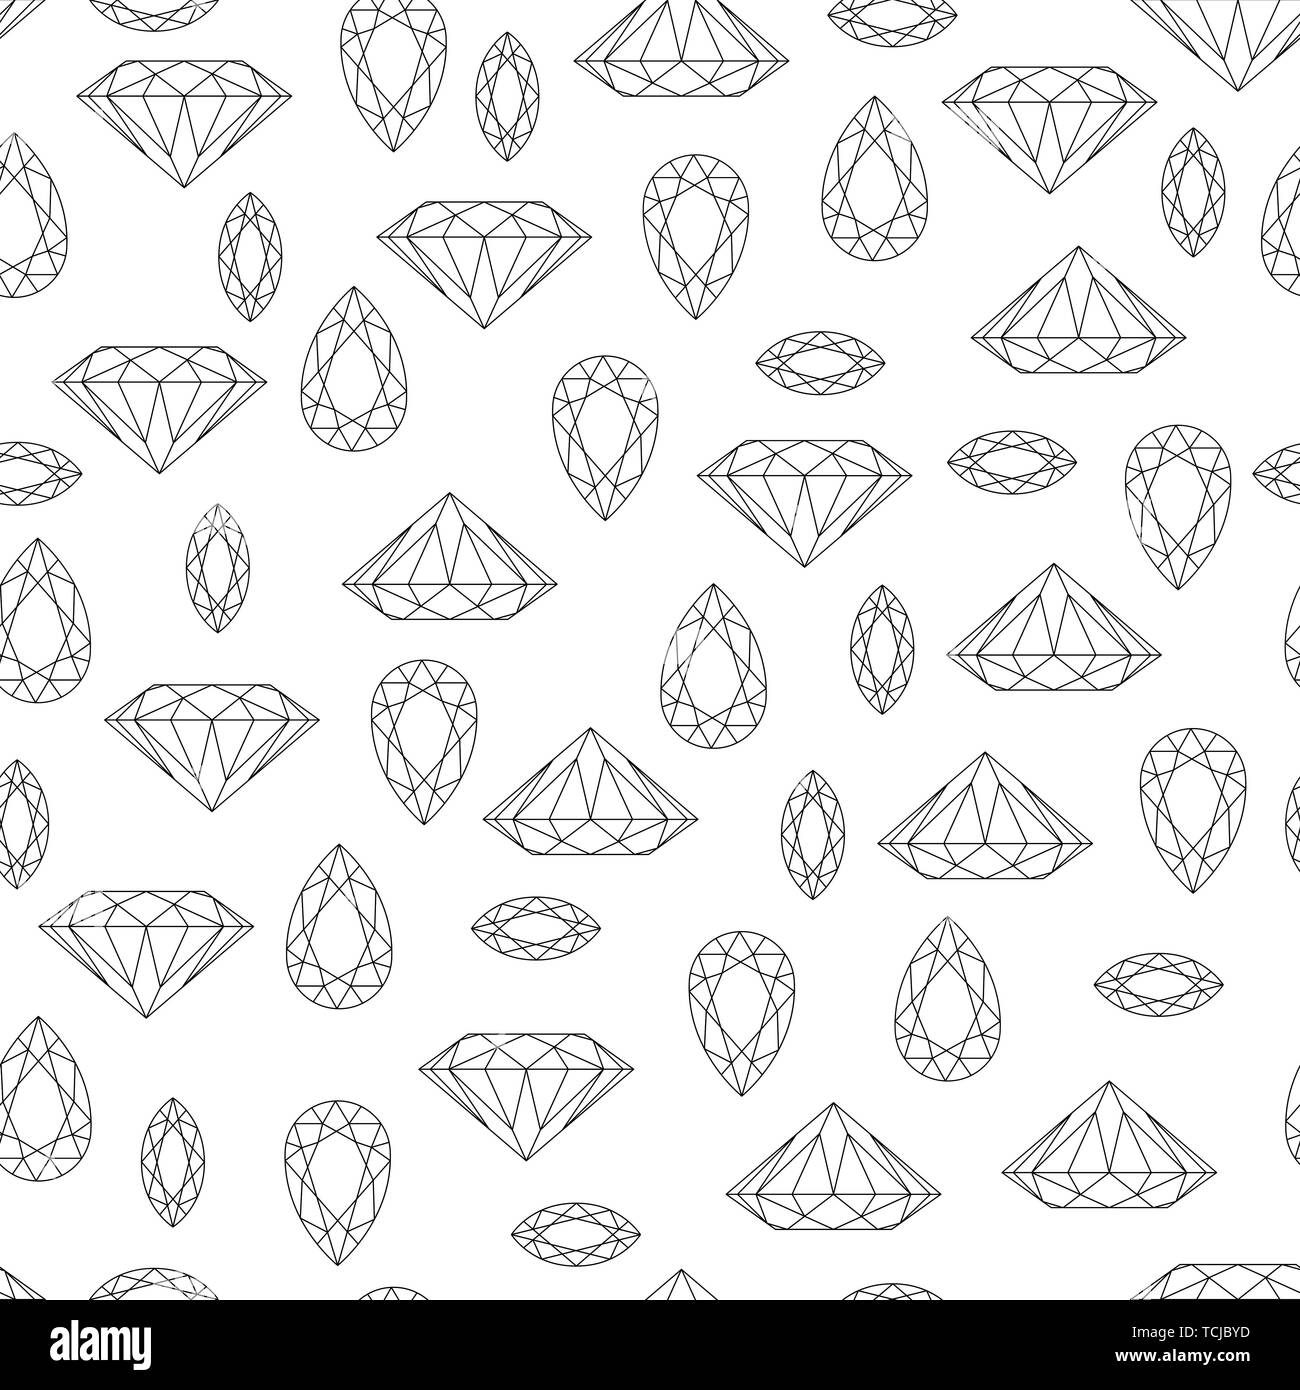 Monochrome black and white seamless pattern with gem stones and diamonds on white background. stock vector illustration - Stock Image